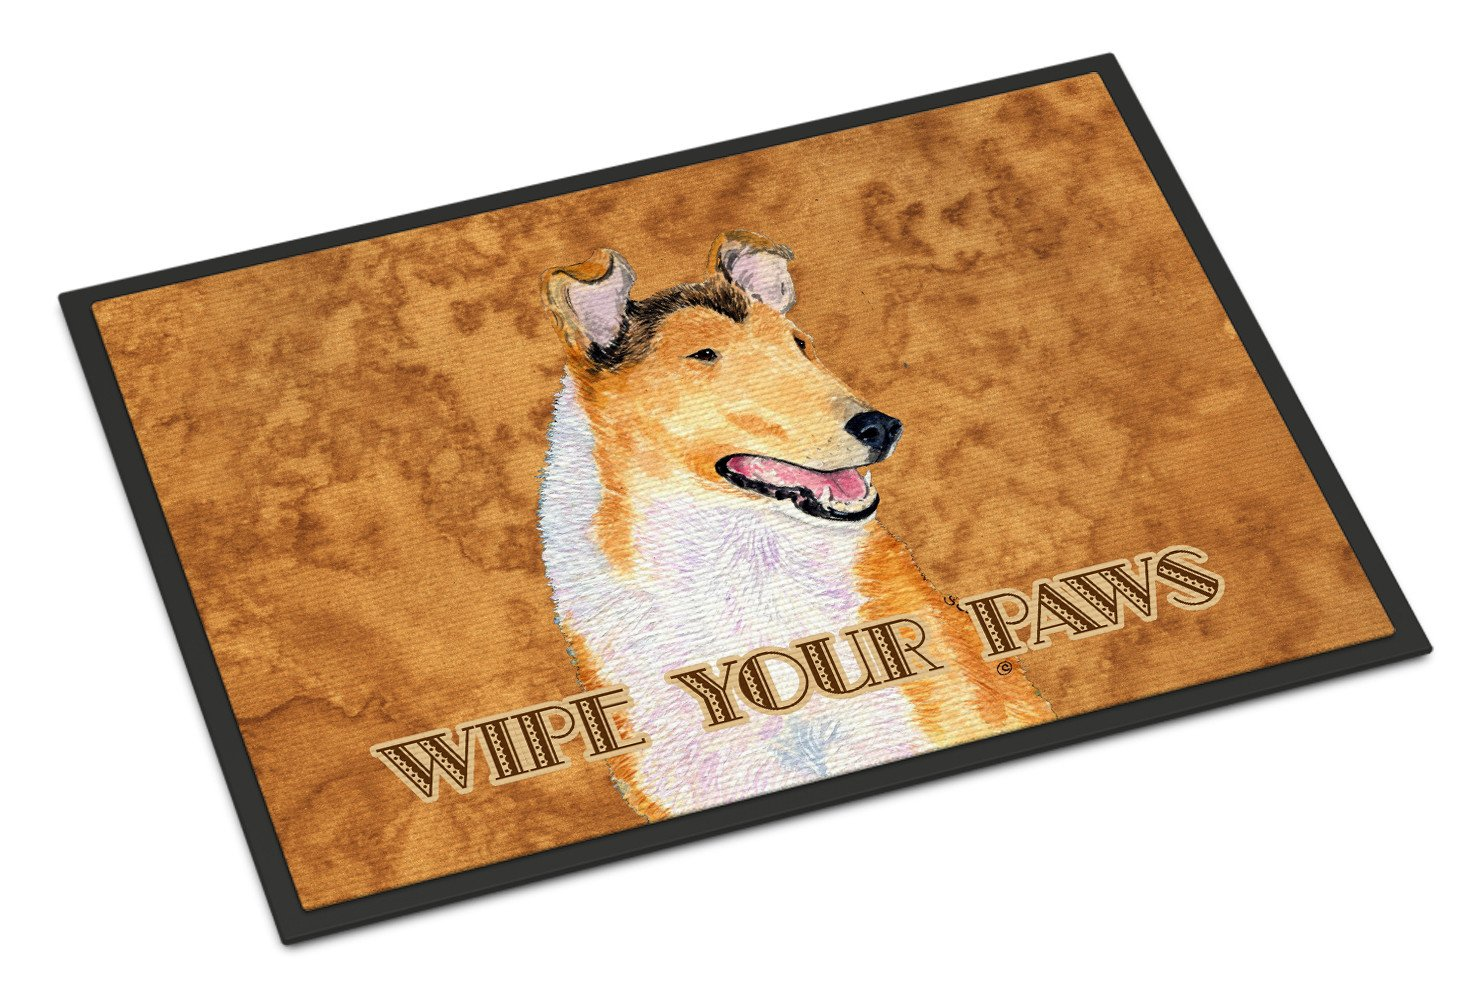 Collie Smooth Wipe your Paws Indoor or Outdoor Mat 18x27 SS4903MAT - the-store.com